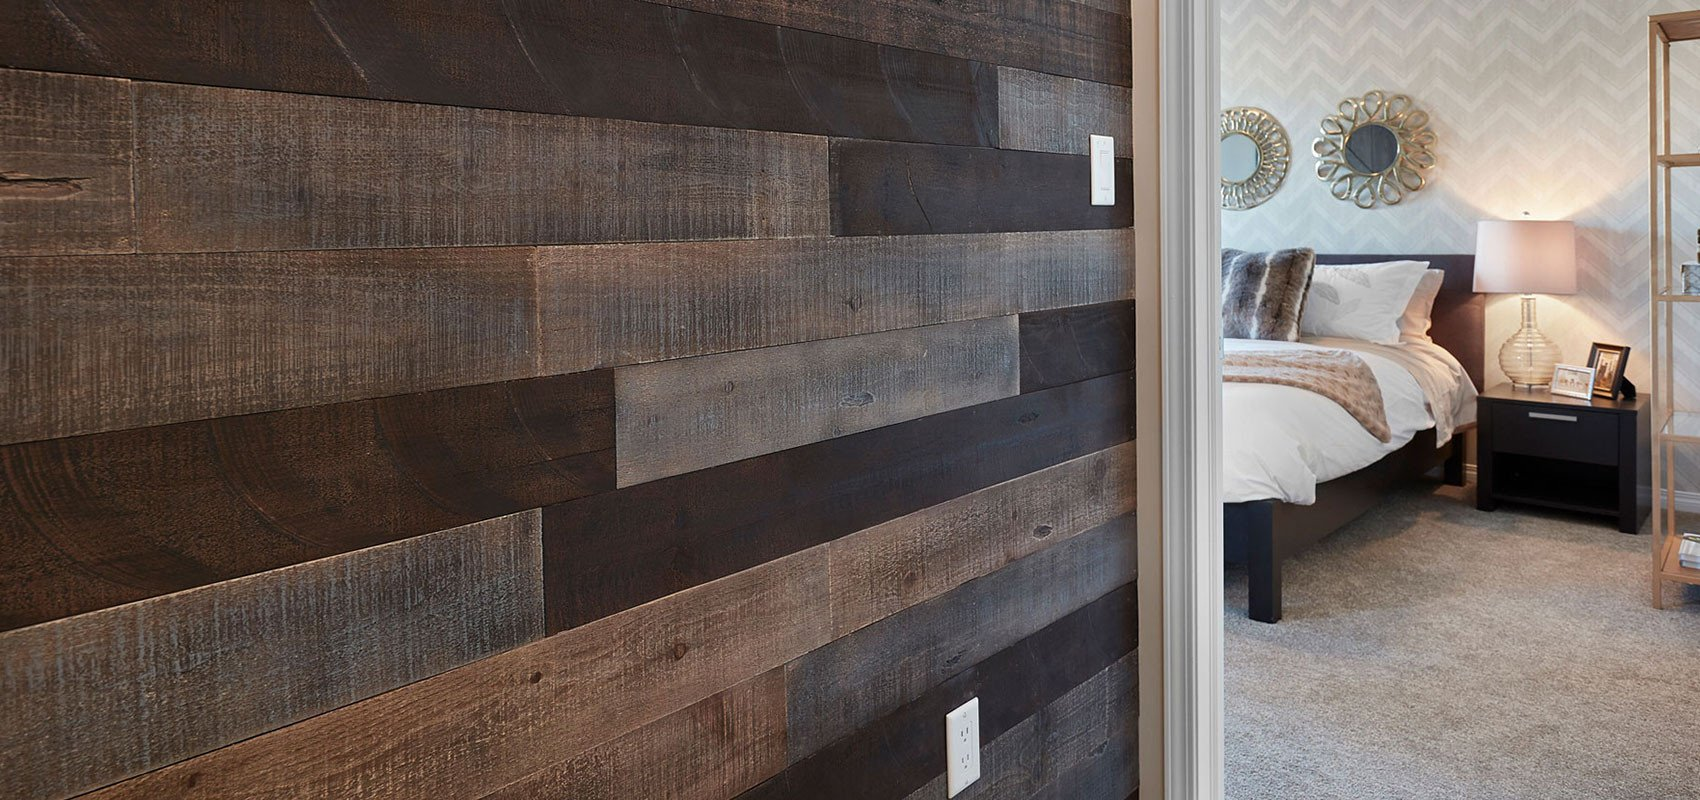 AS-IS BRAND Wood Walls (RAW-ISH) - Glue & Stick Aged Wood Planks (20 Sq. Ft)